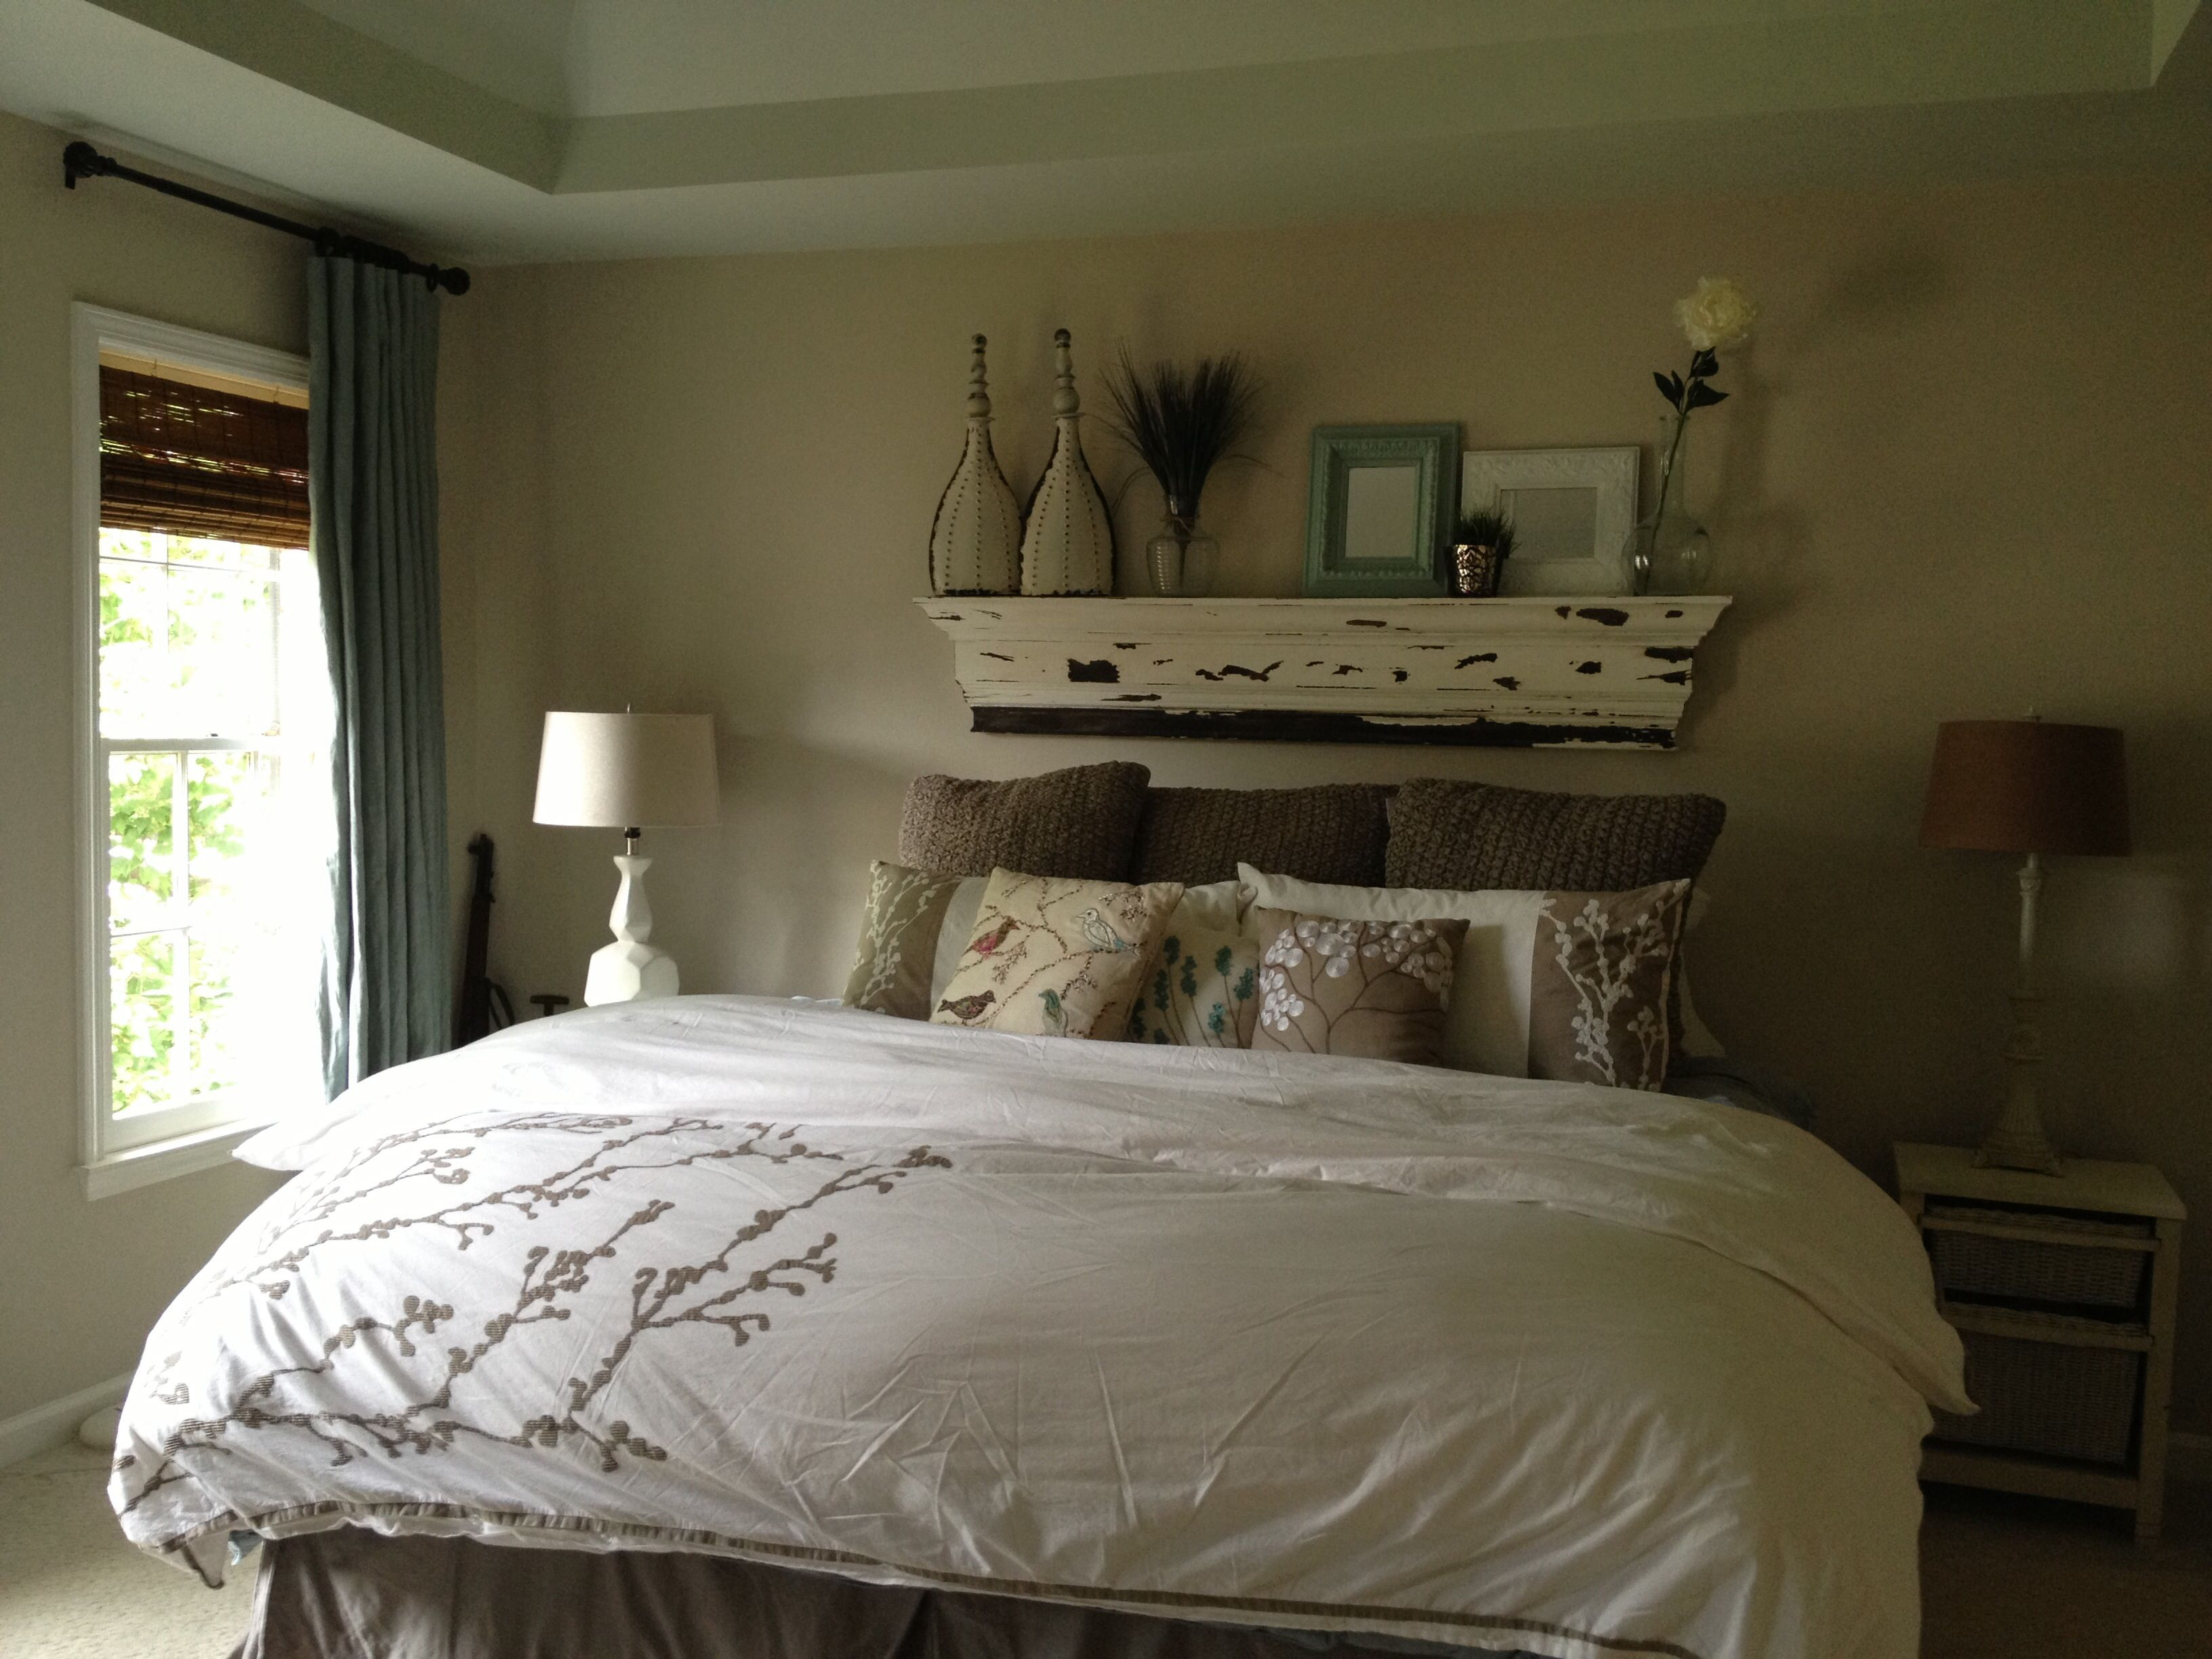 Master bedroom Bed without headboard, Home decor bedroom